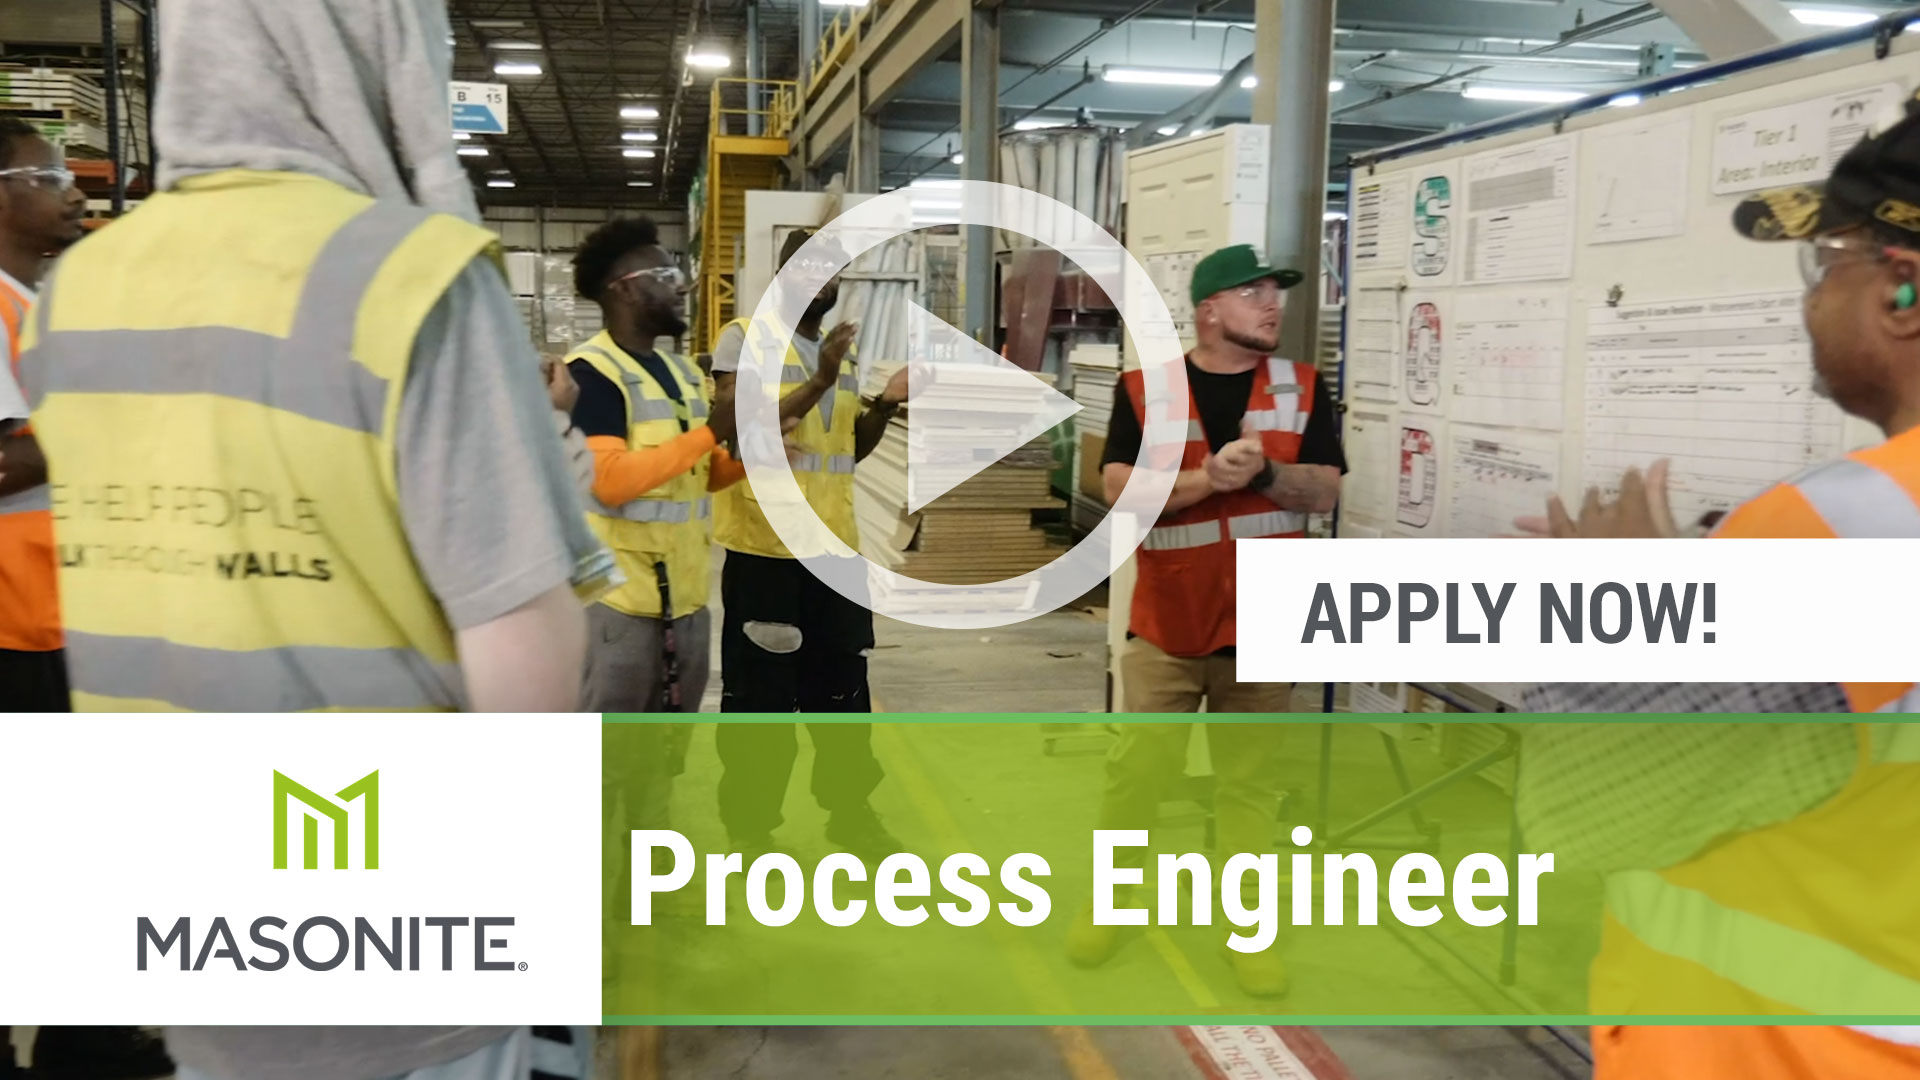 Watch our careers video for available job opening Process Engineer in Northumberland, PA, USA